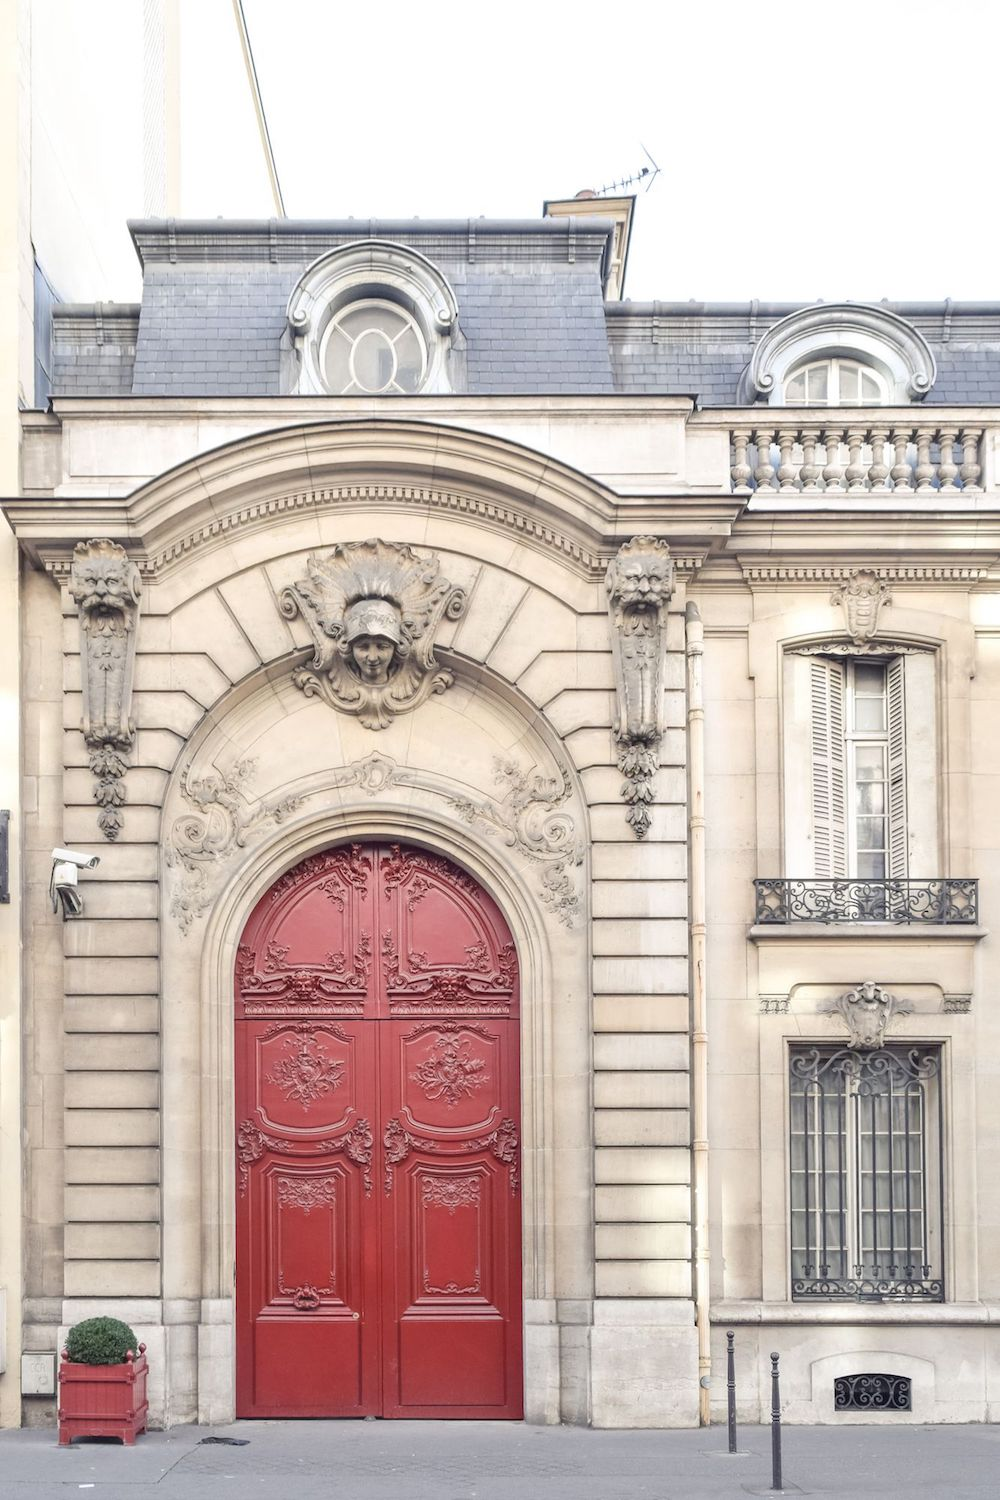 Rue Saint Honoré, Paris